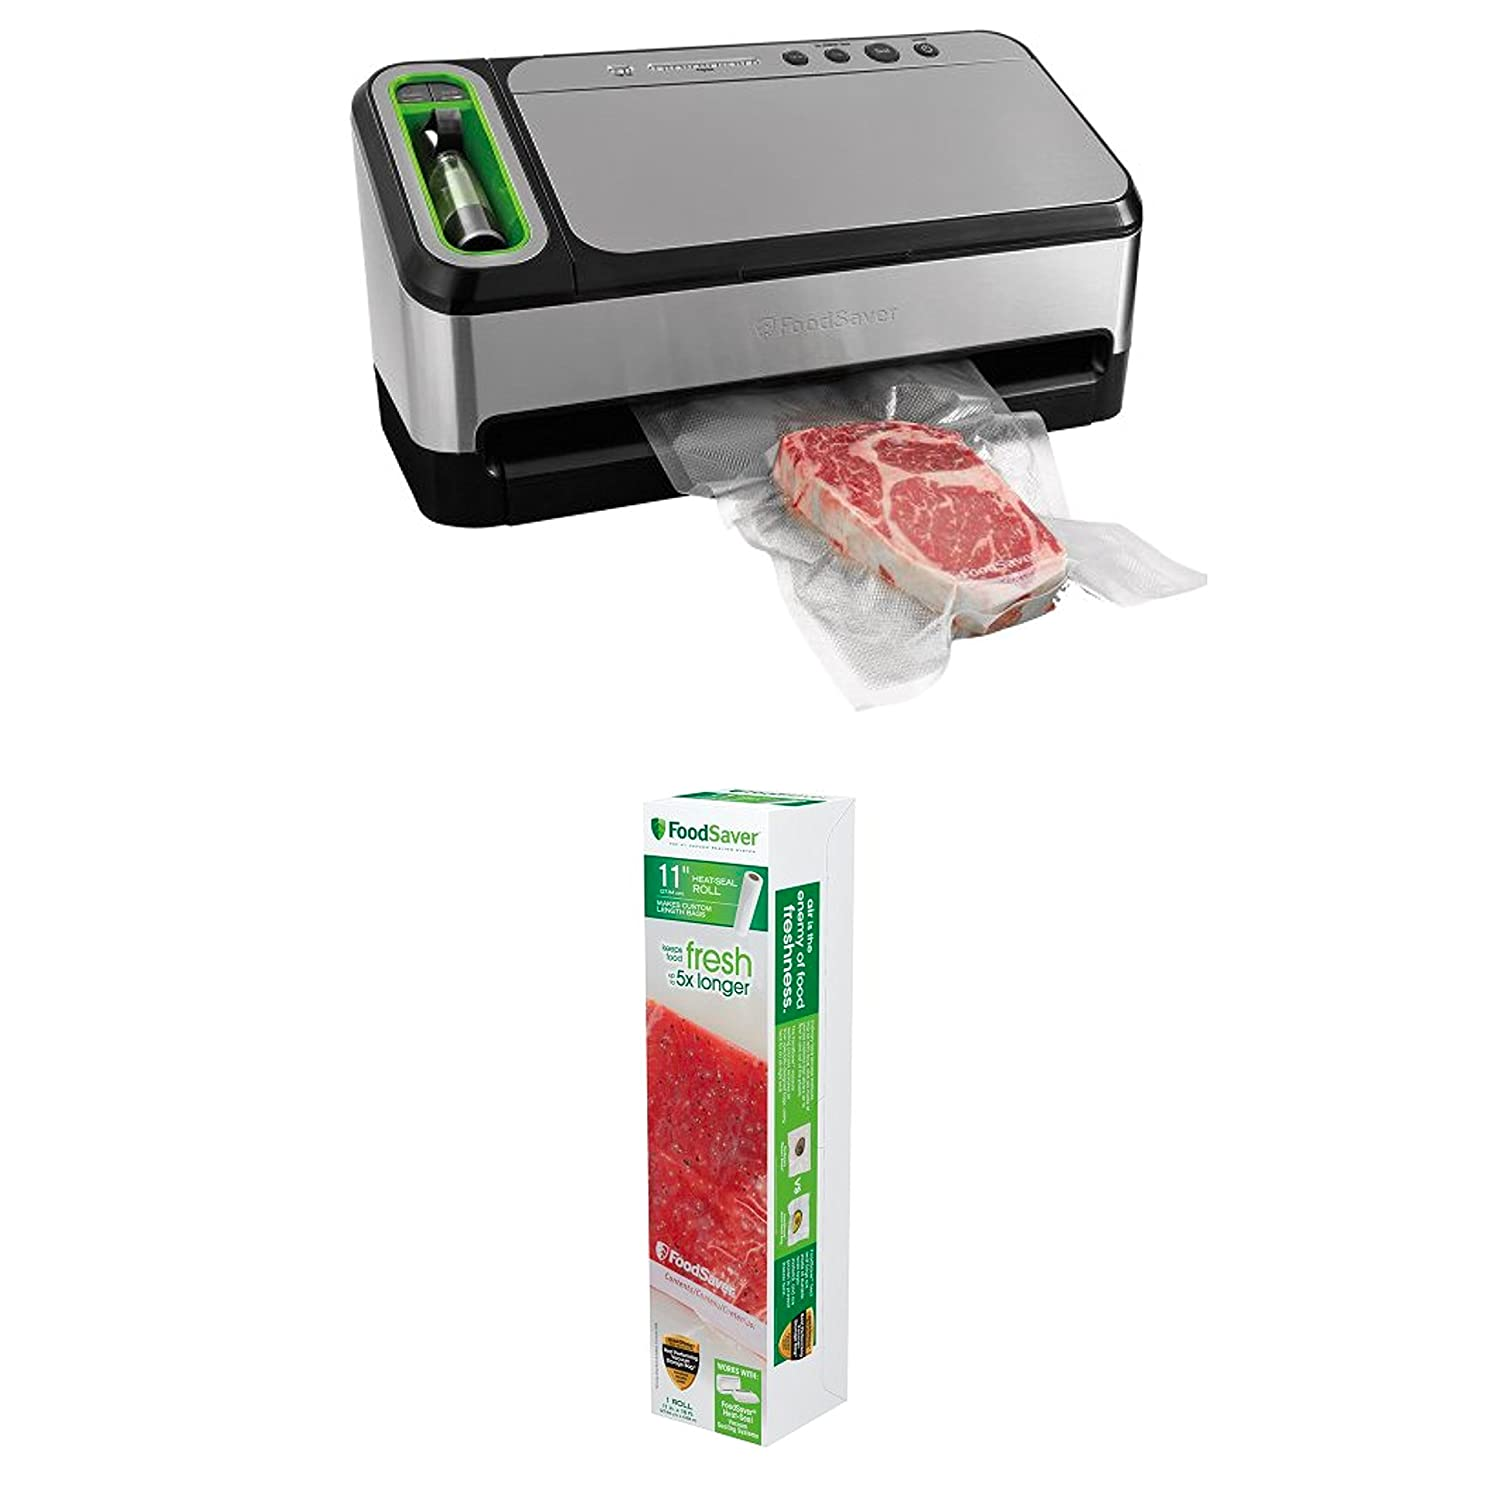 "Bundle Includes 2 Items - FoodSaver 2-in-1 Vacuum Sealing System with Starter Kit, 4800 Series, v4840 and FoodSaver 11"" Roll with unique multi layer construction, BPA free"